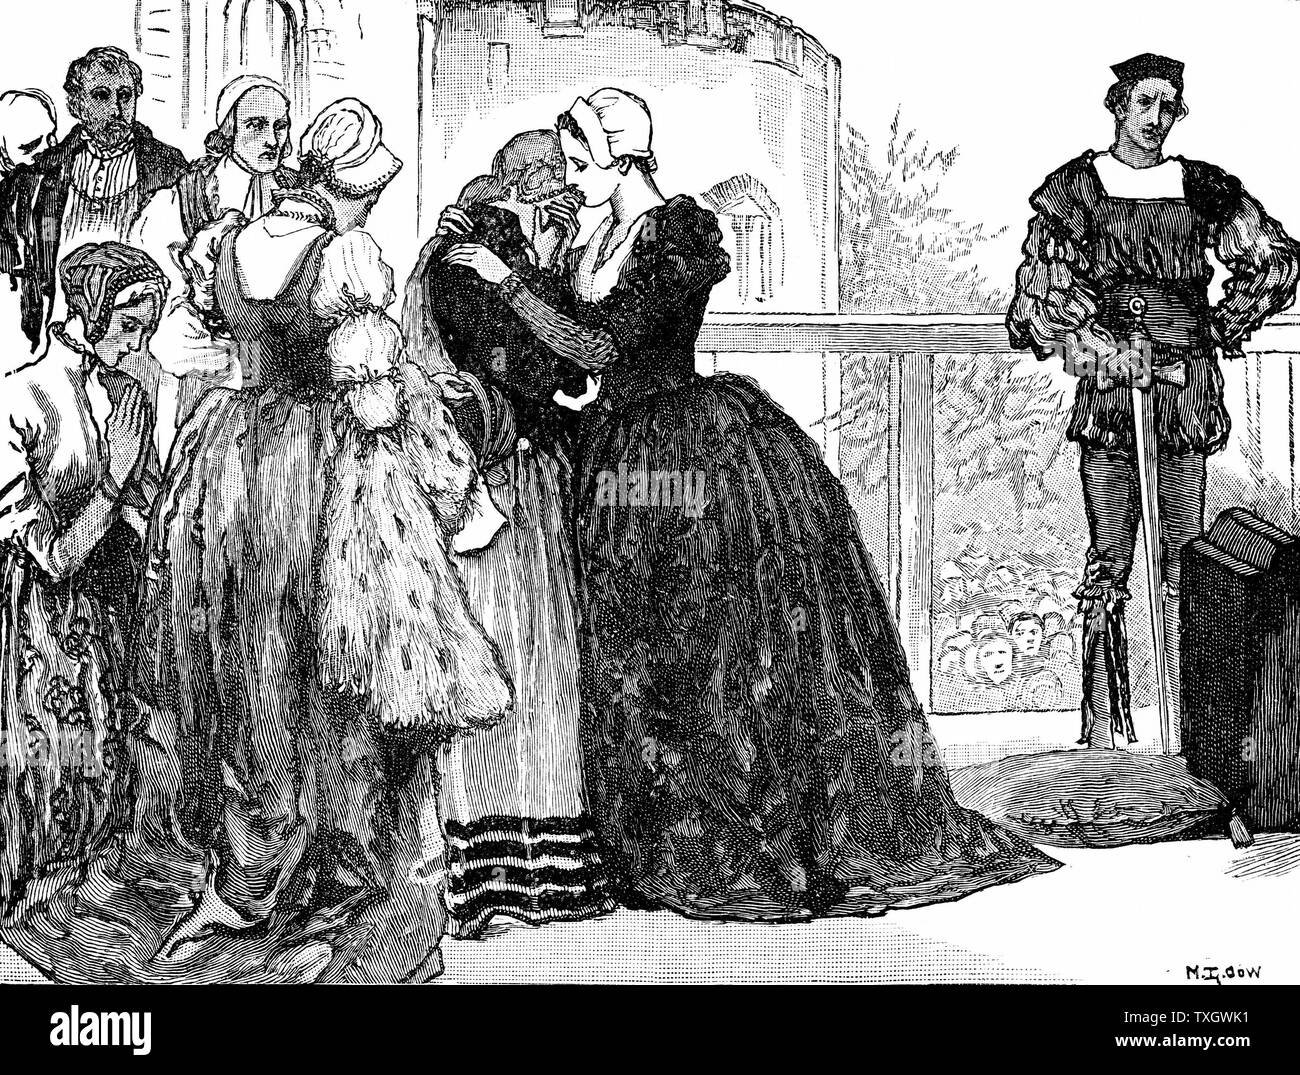 Anne Boleyn (c1504-36) second wife of Henry VIII of England, mother of Elizabeth I. Found guilty of high treason on grounds of adultery, charges almost certainly fabricated. Anne taking leave of her ladies before her execution at Tower of London. Executioner on right, waits to behead Anne with sword rather than customary axe as cleaner and quicker decapitation achieved Late 19th century Engraving - Stock Image